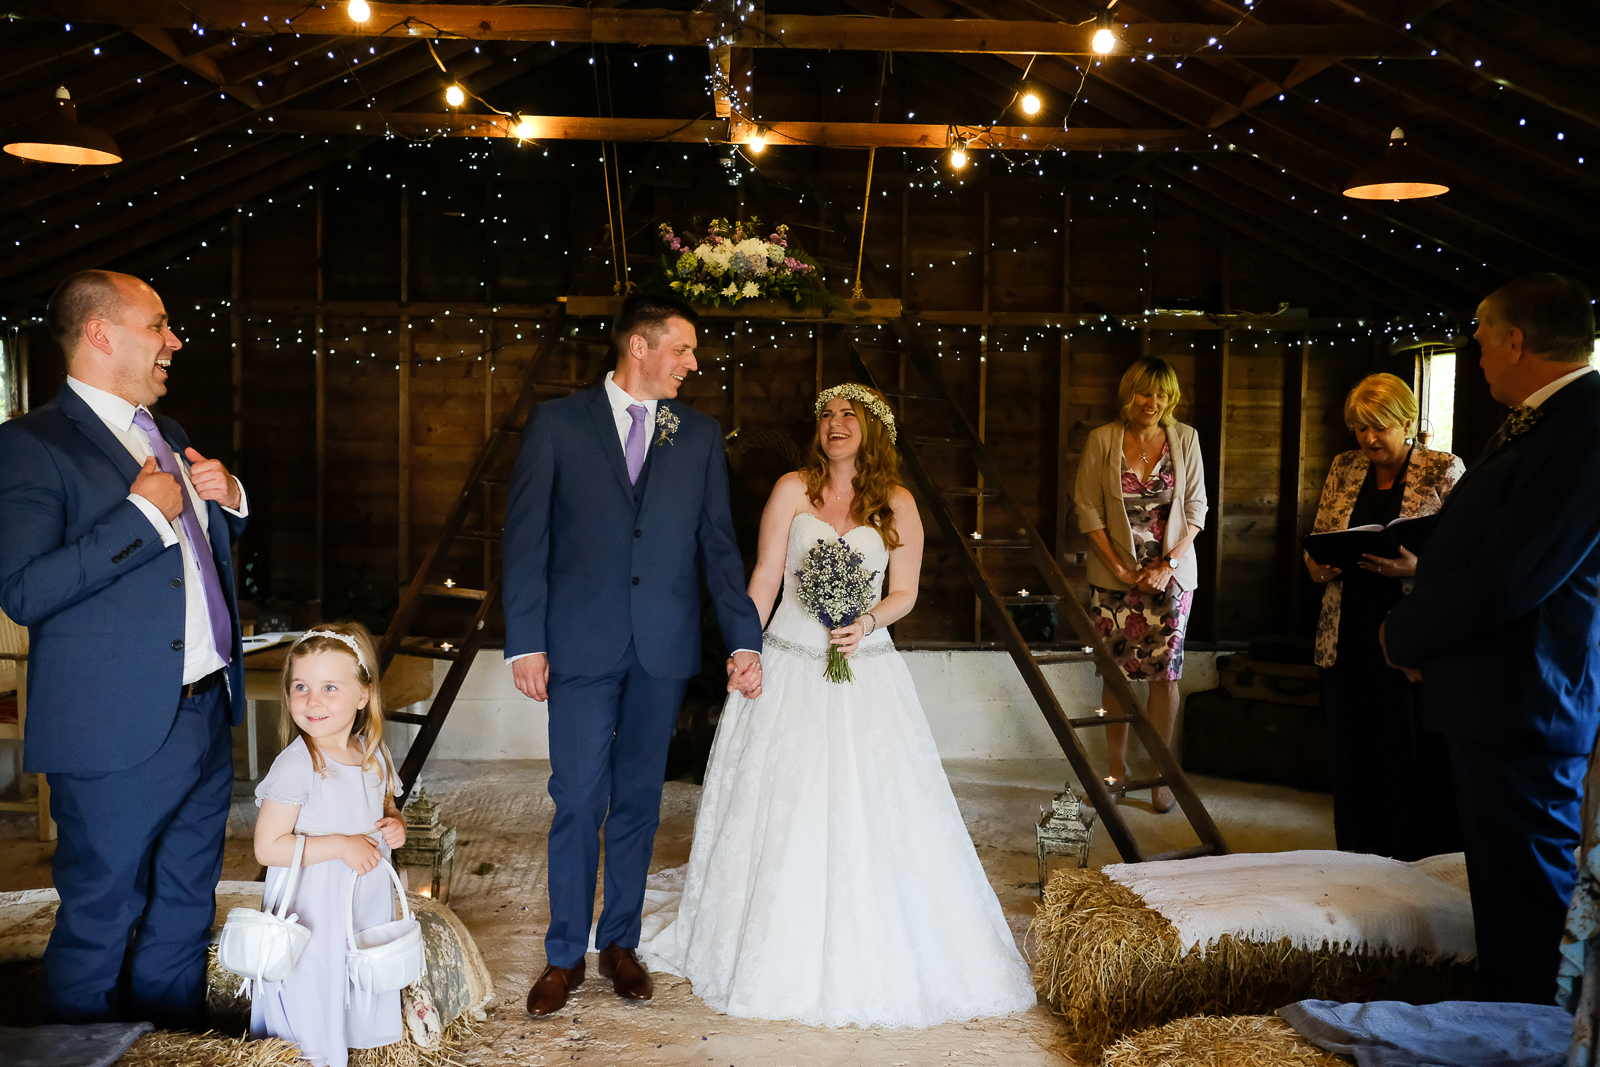 Rustic elopement at The Cow Shed in Cornwall 044.jpg